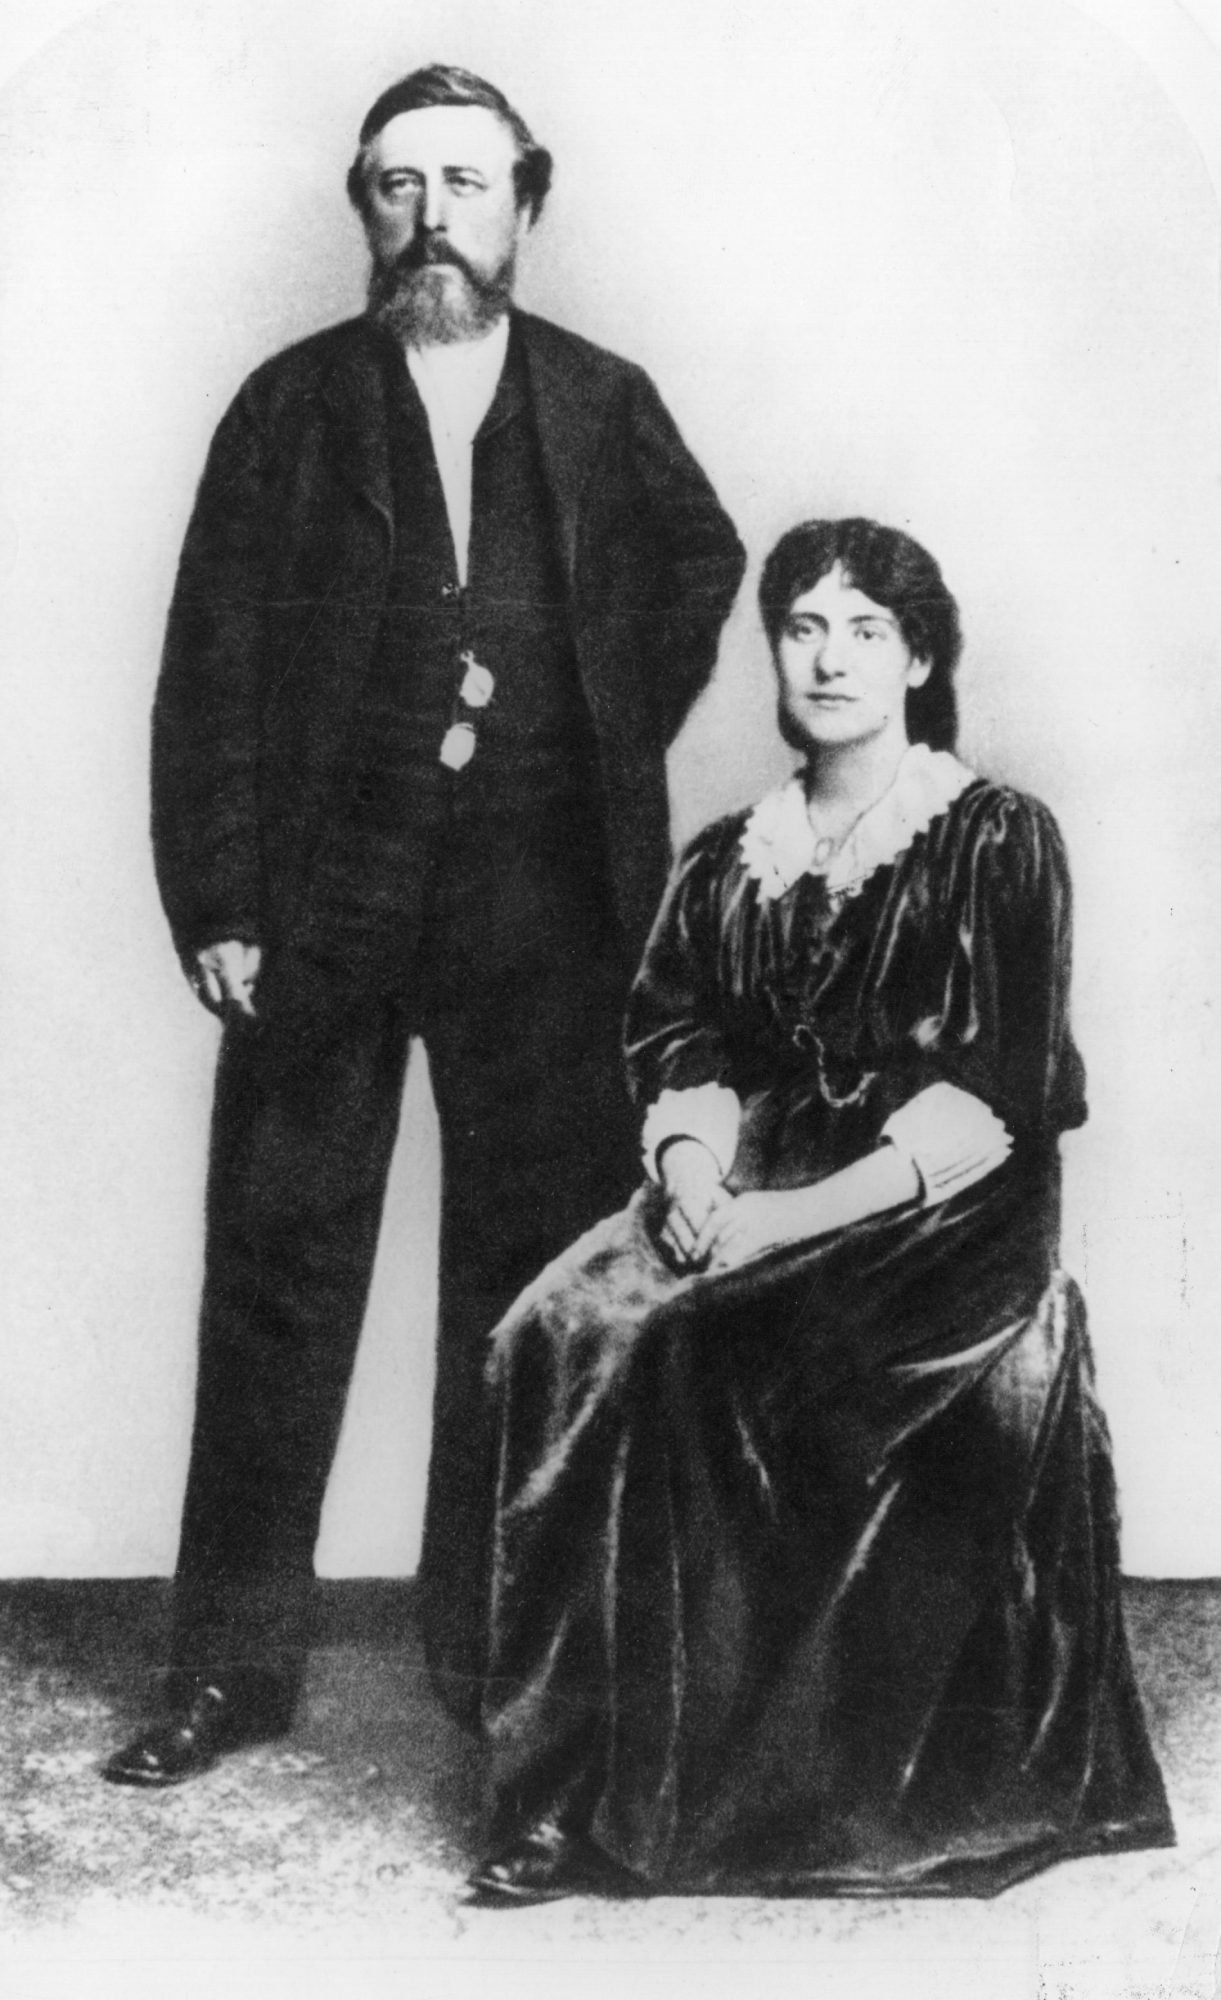 circa 1870: German socialist Wilhelm Liebknecht (1826 - 1900) with Tussy Marx, the daughter of Karl Marx. (Photo by Hulton Archive/Getty Images)